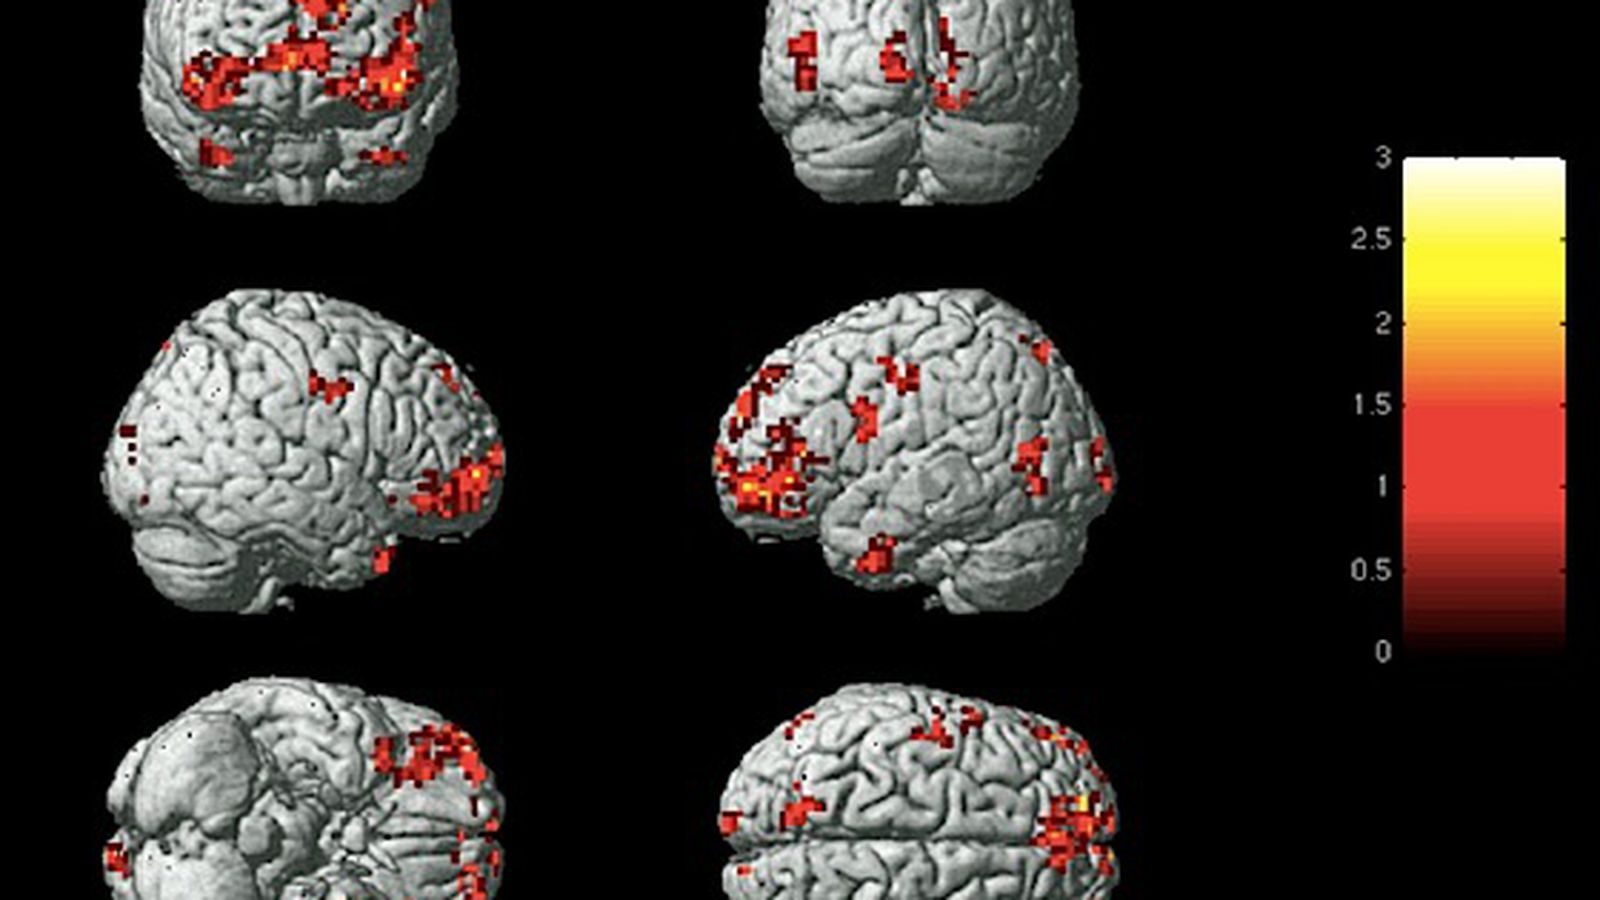 For The First Time Scientists Can Identify Your Emotions Based On Brain Activity The Verge